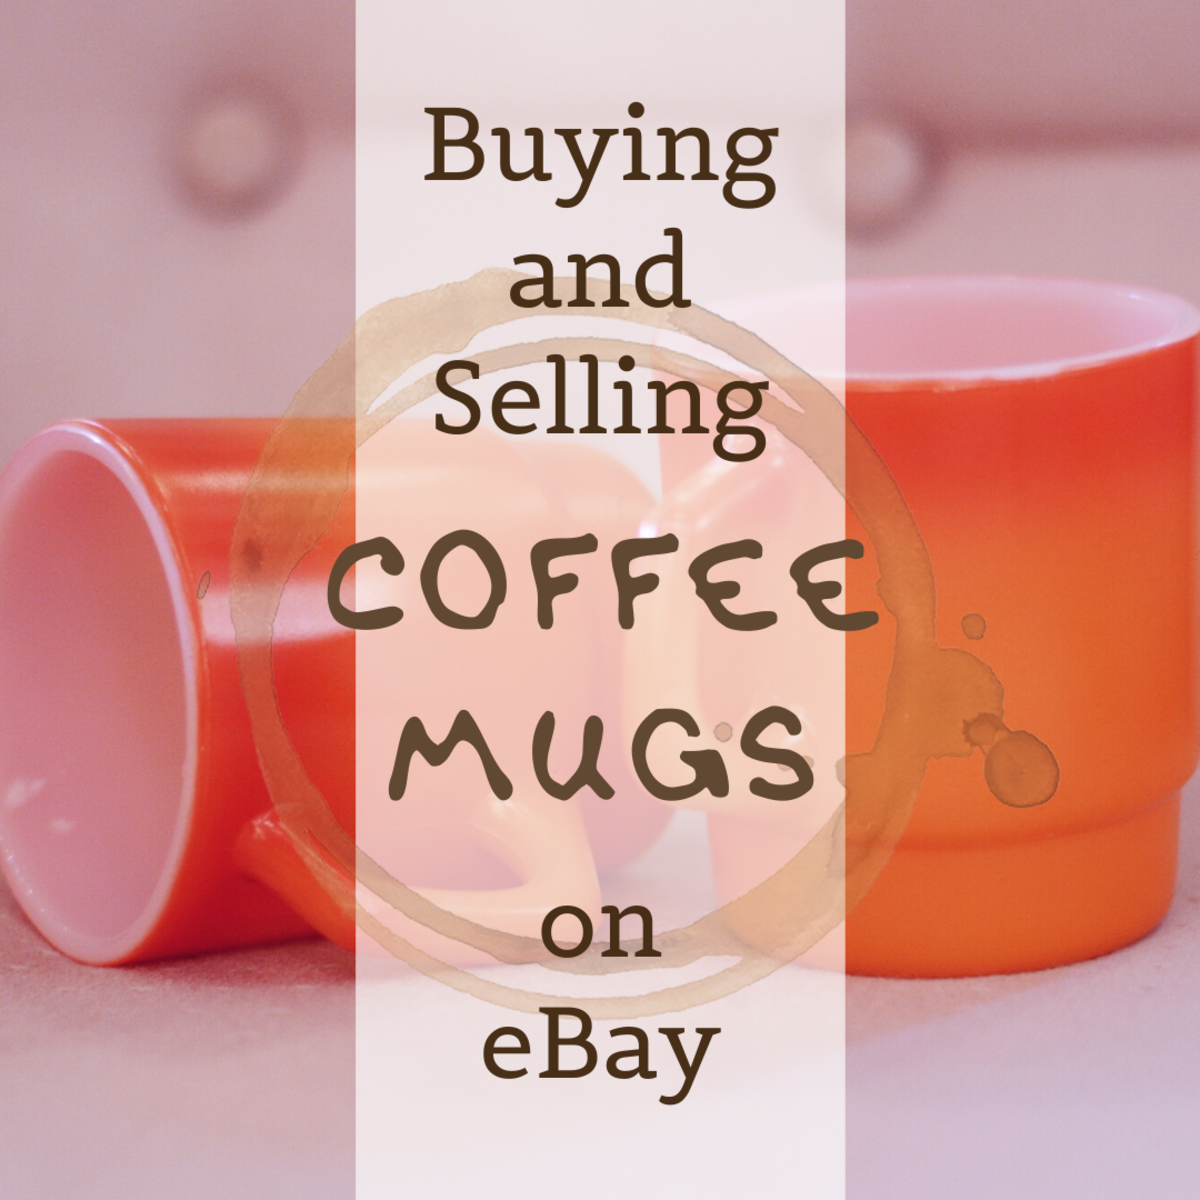 How to Buy and Sell Collectible Coffee Mugs on eBay